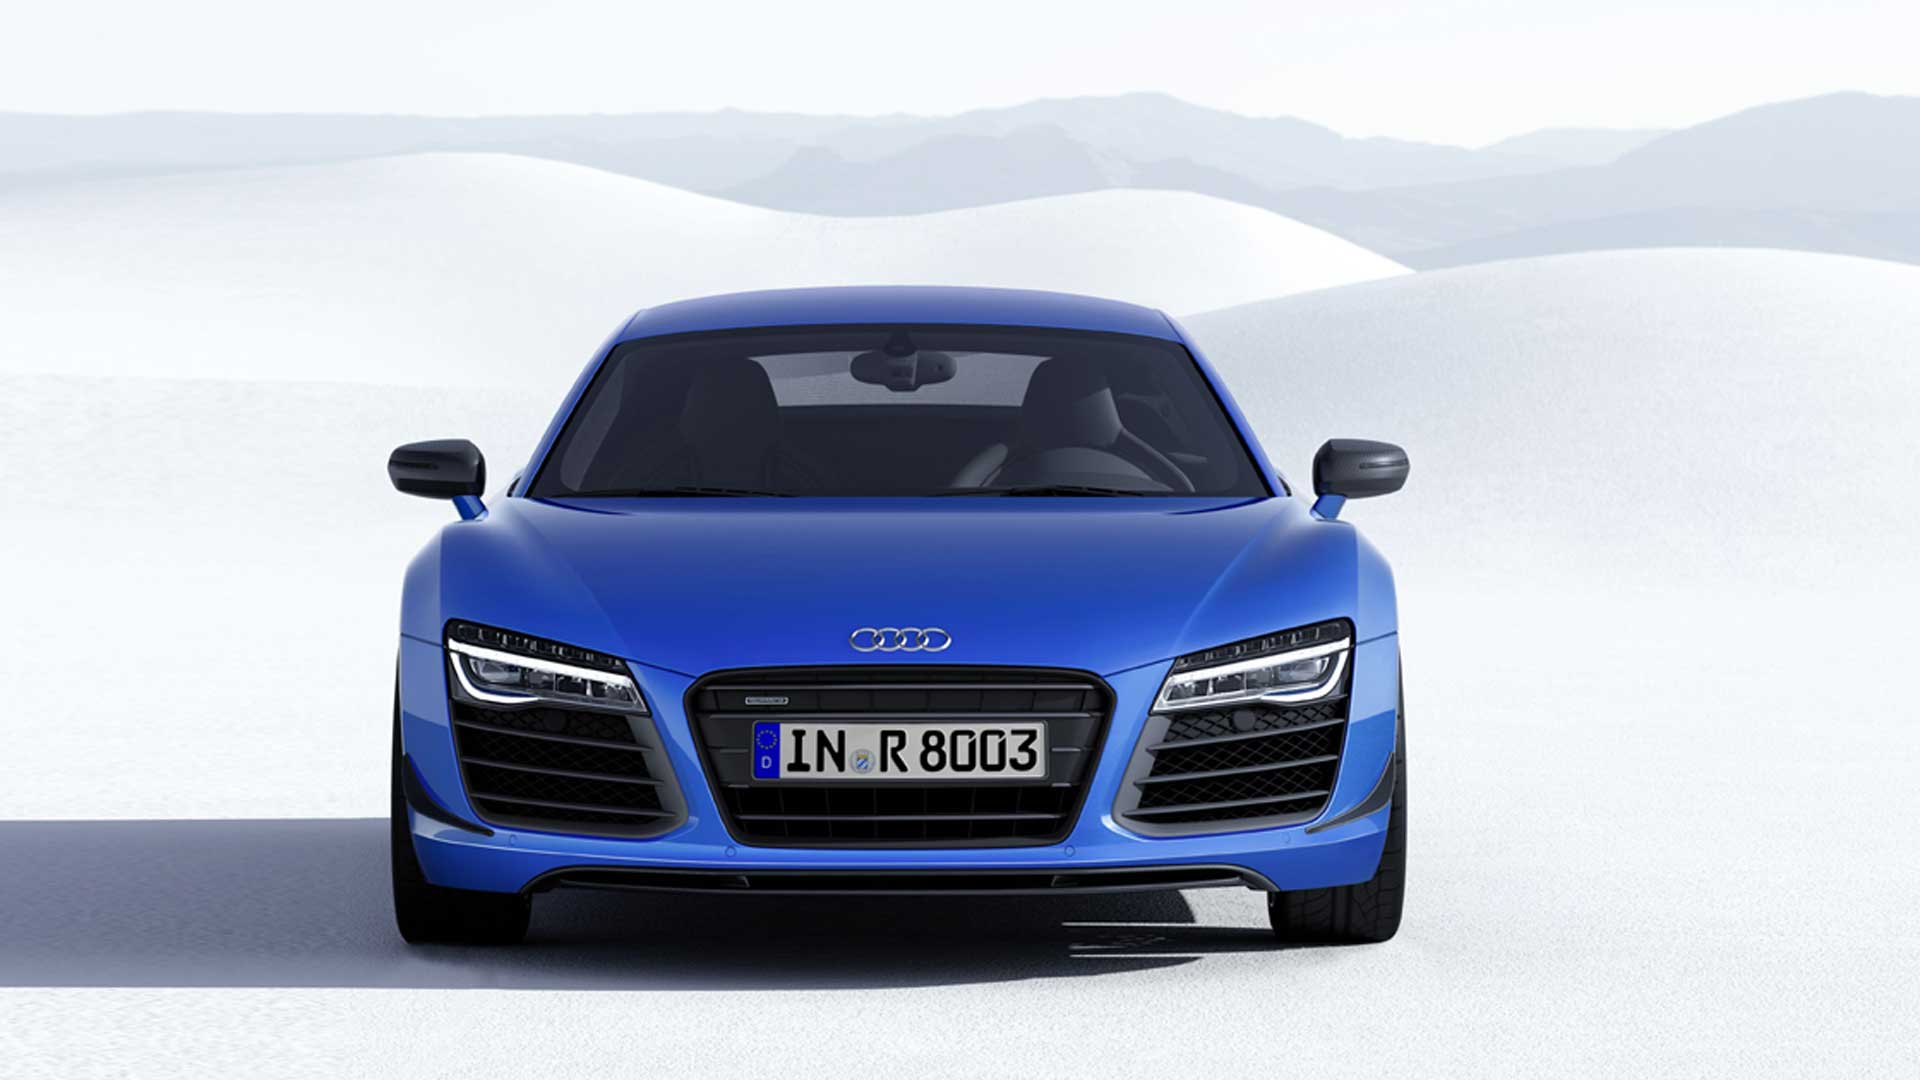 Audi R8 2016 V10 plus Price Mileage Reviews Specification